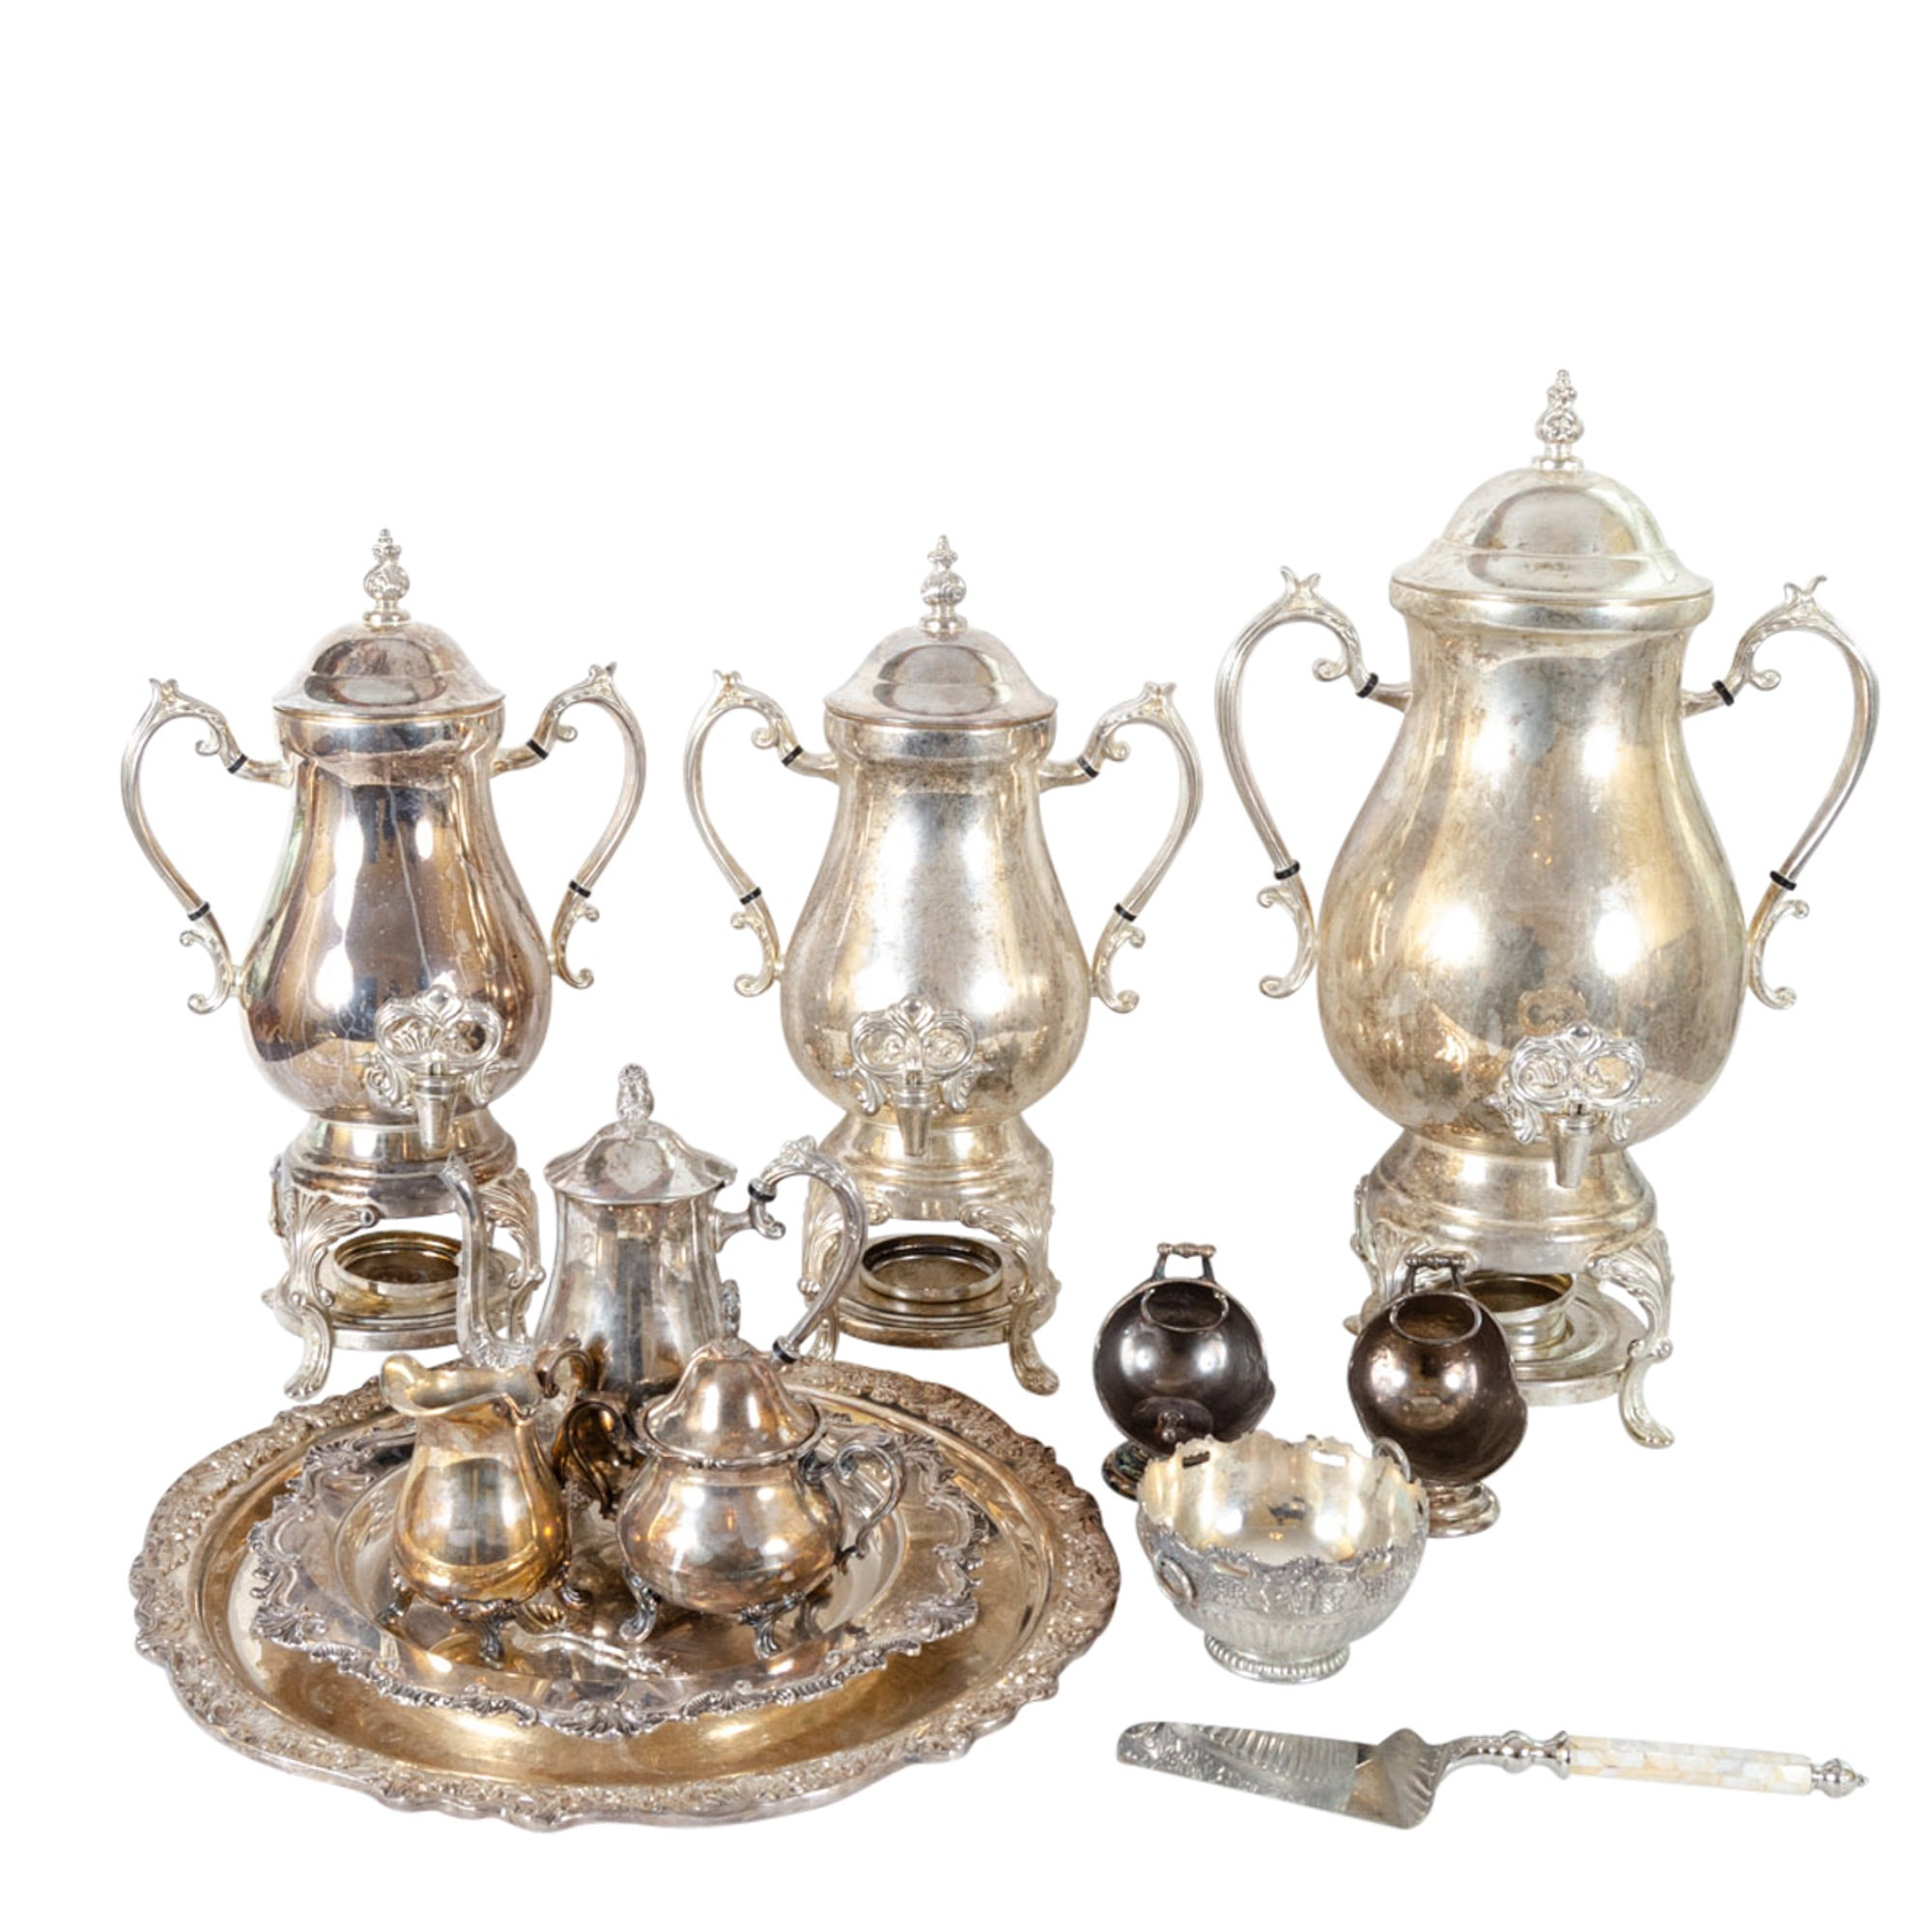 Silver Plate Hot Water Urns, Tea Service and Serveware